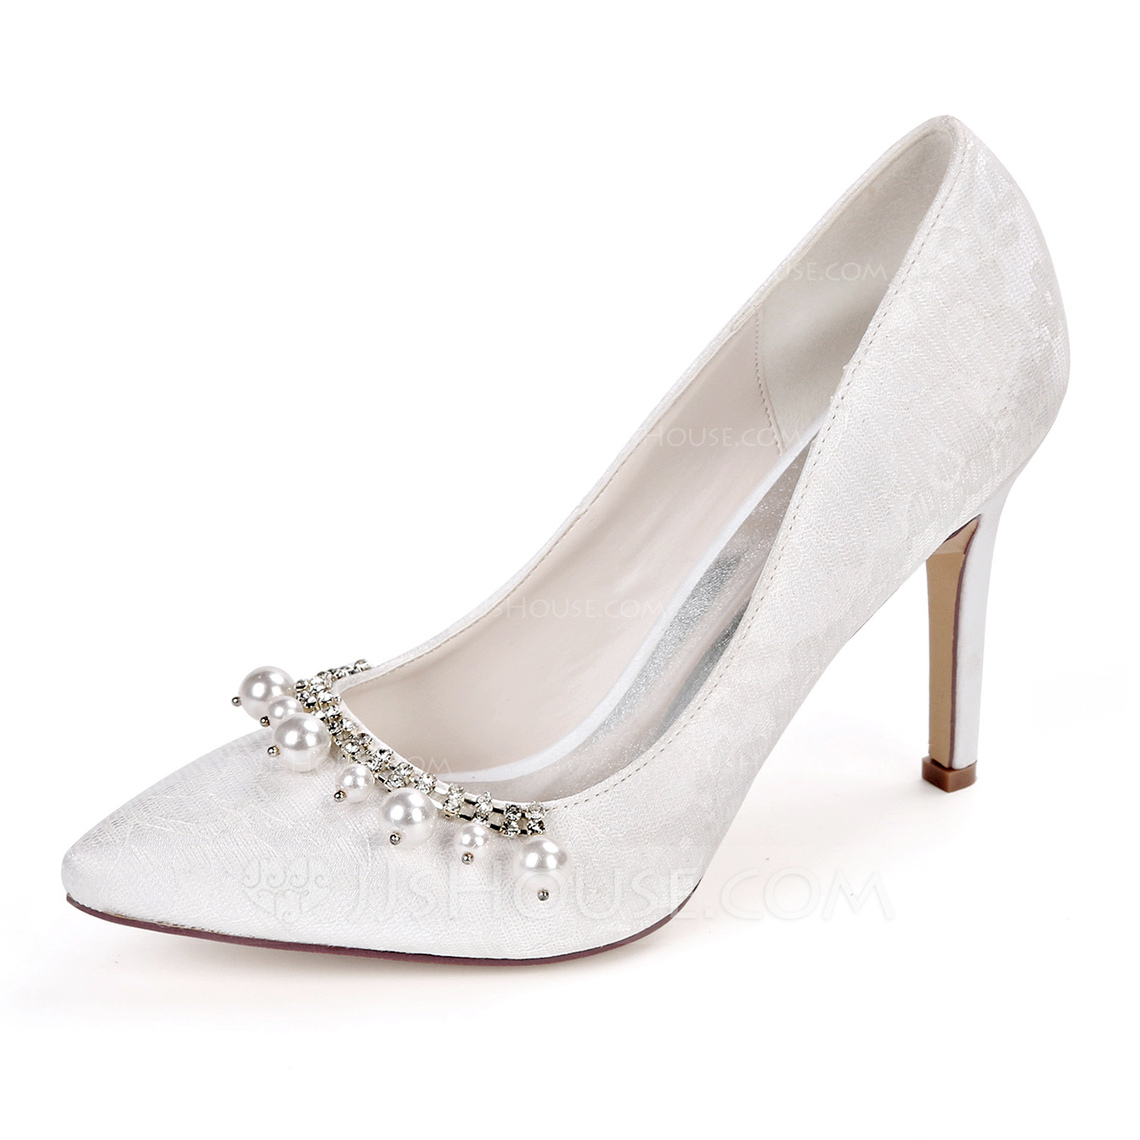 Women's Lace Satin Stiletto Heel Pumps With Pearl